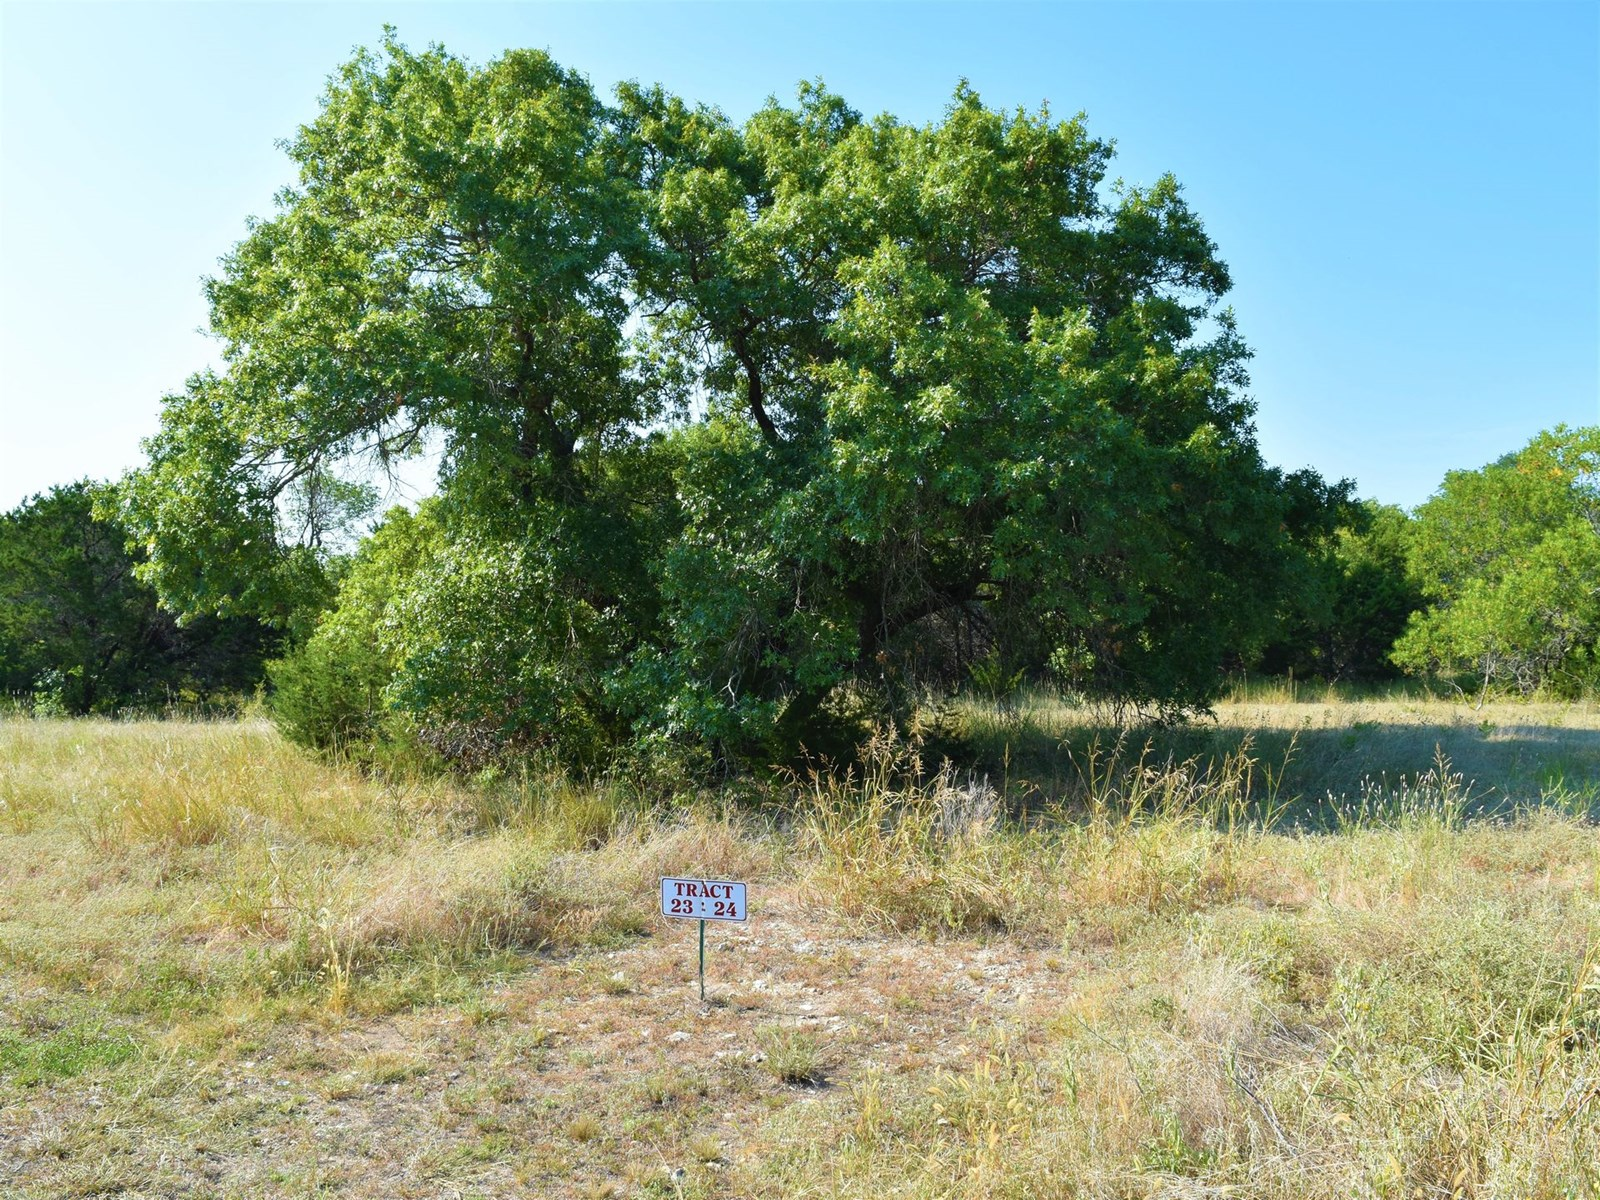 1.39 acre Lot for sale between Waco, TX and Temple, TX